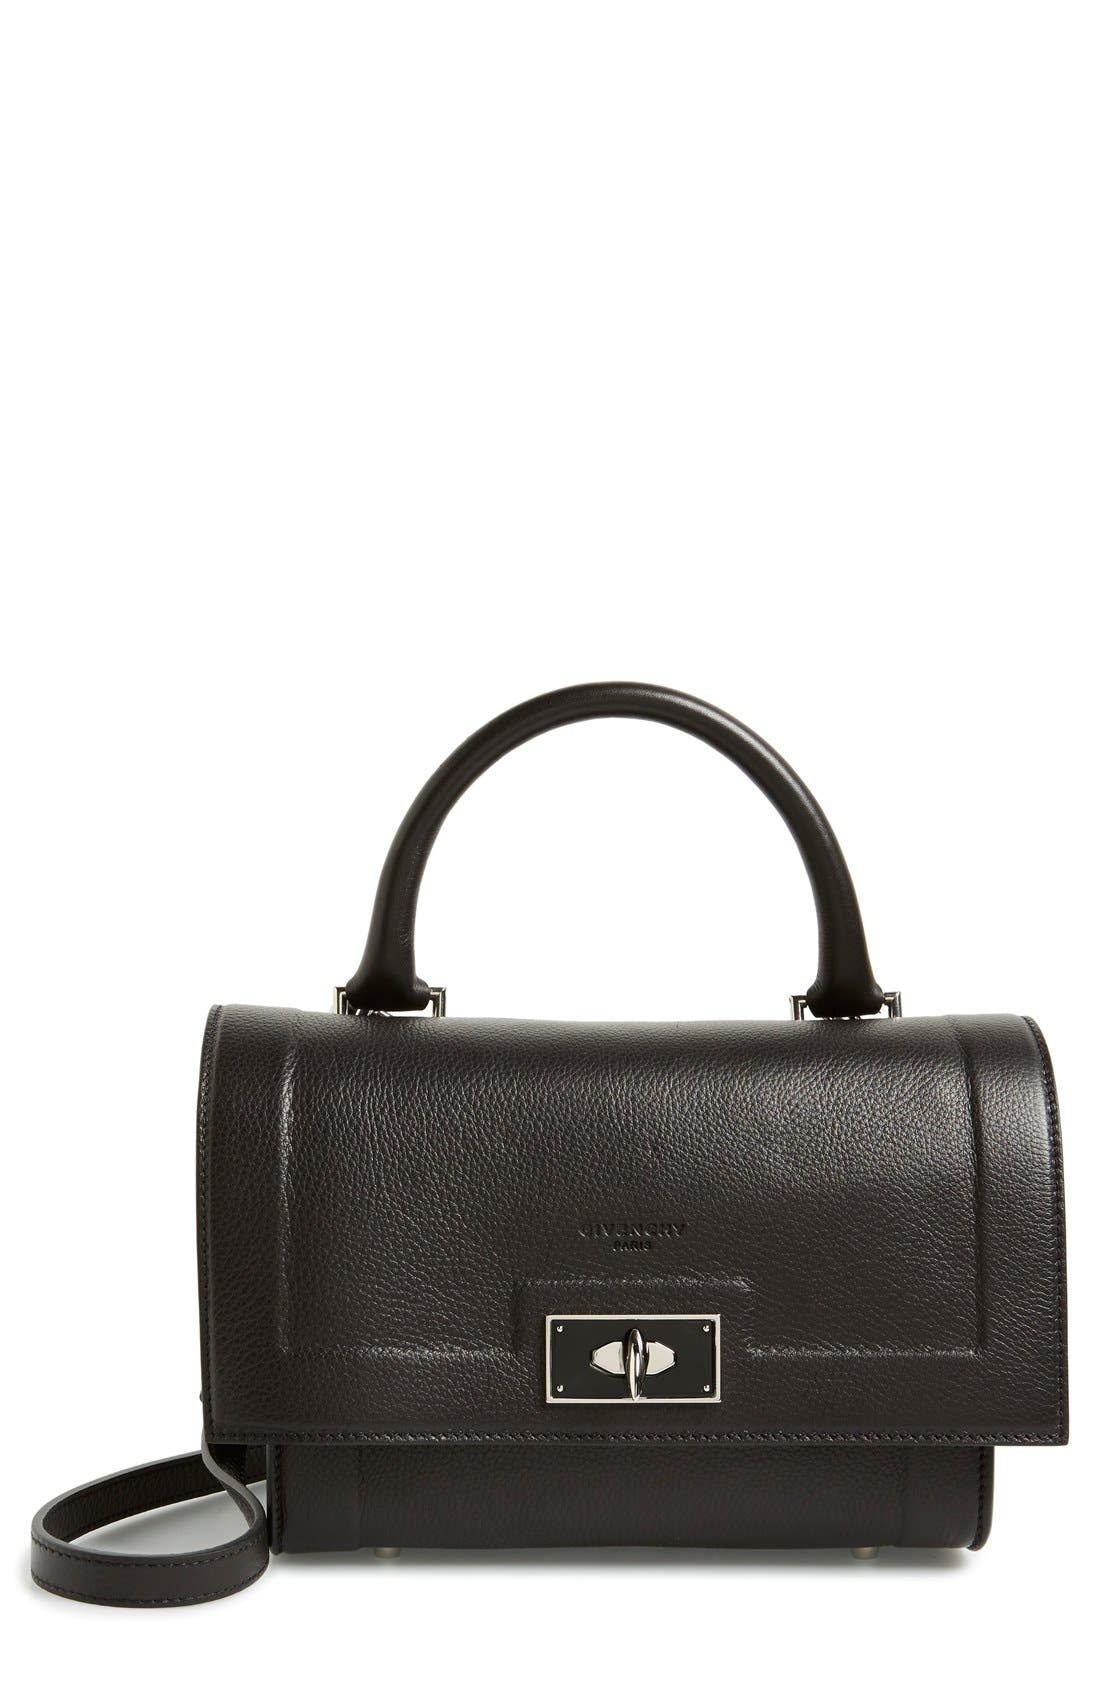 Main Image - Givenchy 'Mini Shark Tooth' Leather Satchel